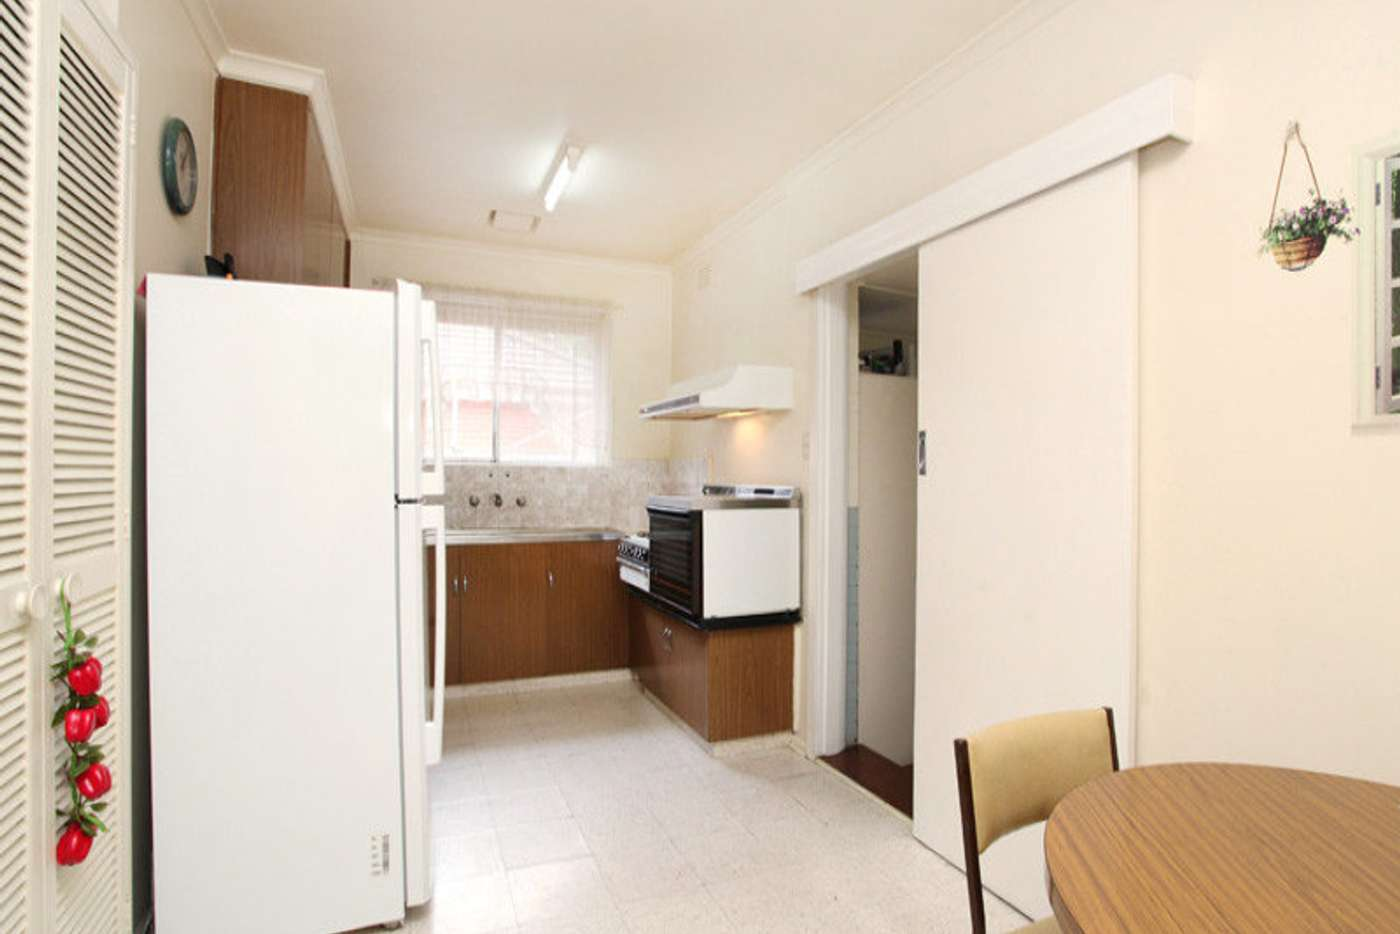 Sixth view of Homely unit listing, 2/19 Elphinstone Street, West Footscray VIC 3012